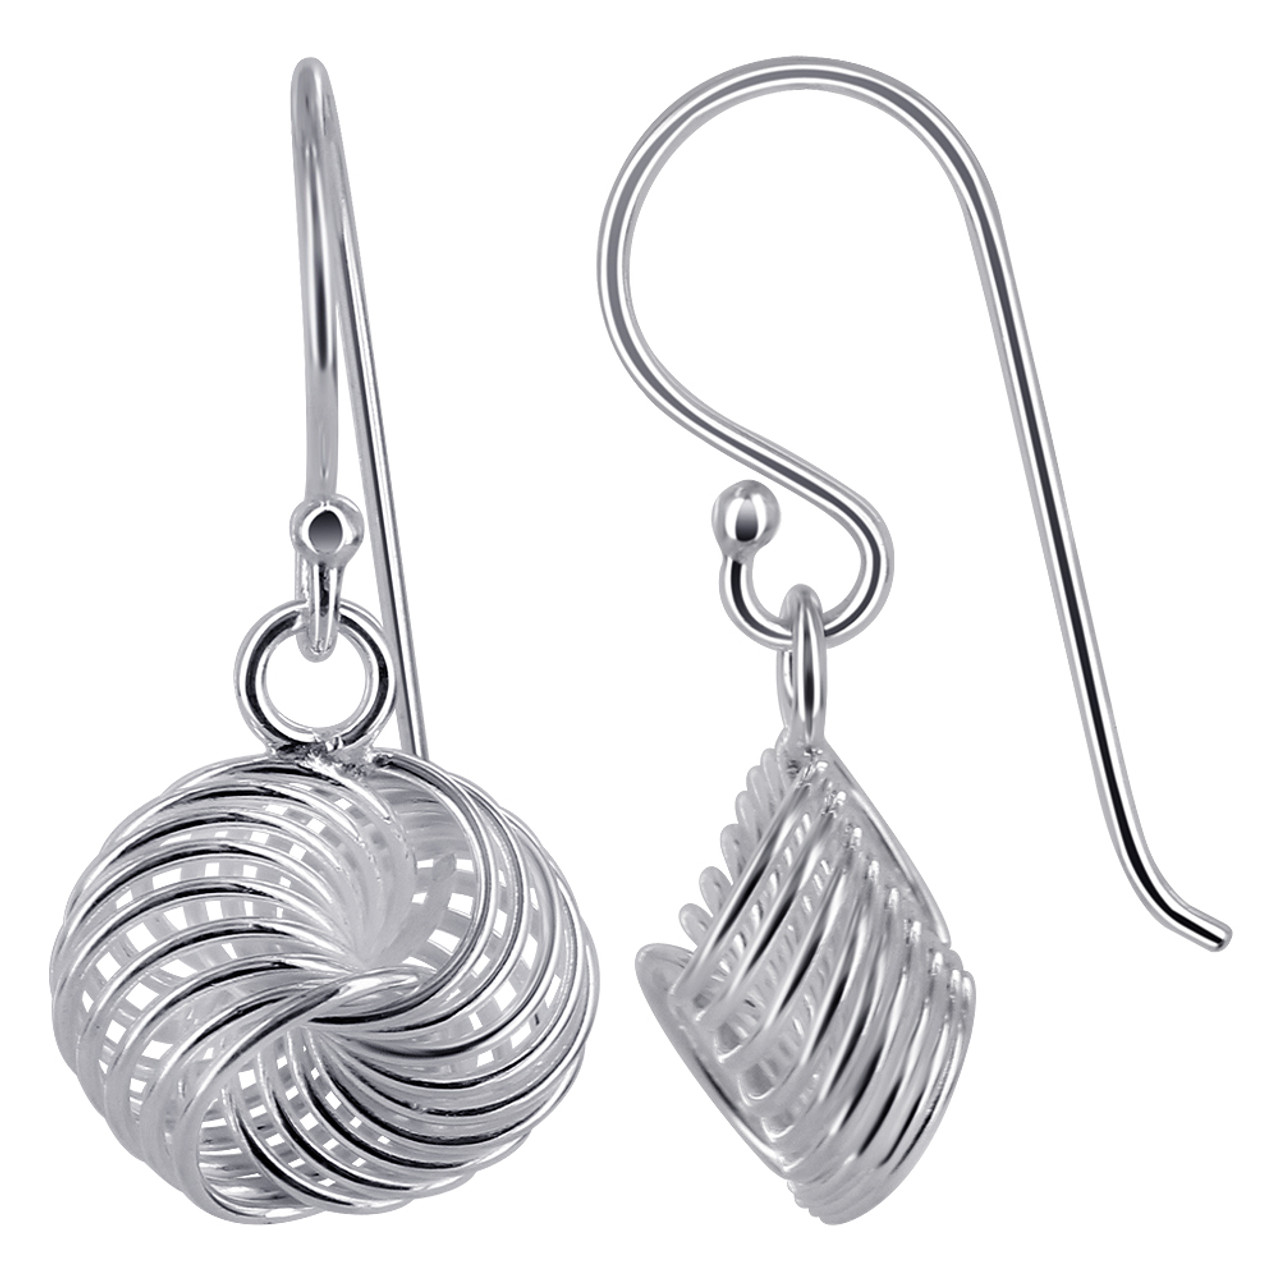 Knot Design Drop Earrings